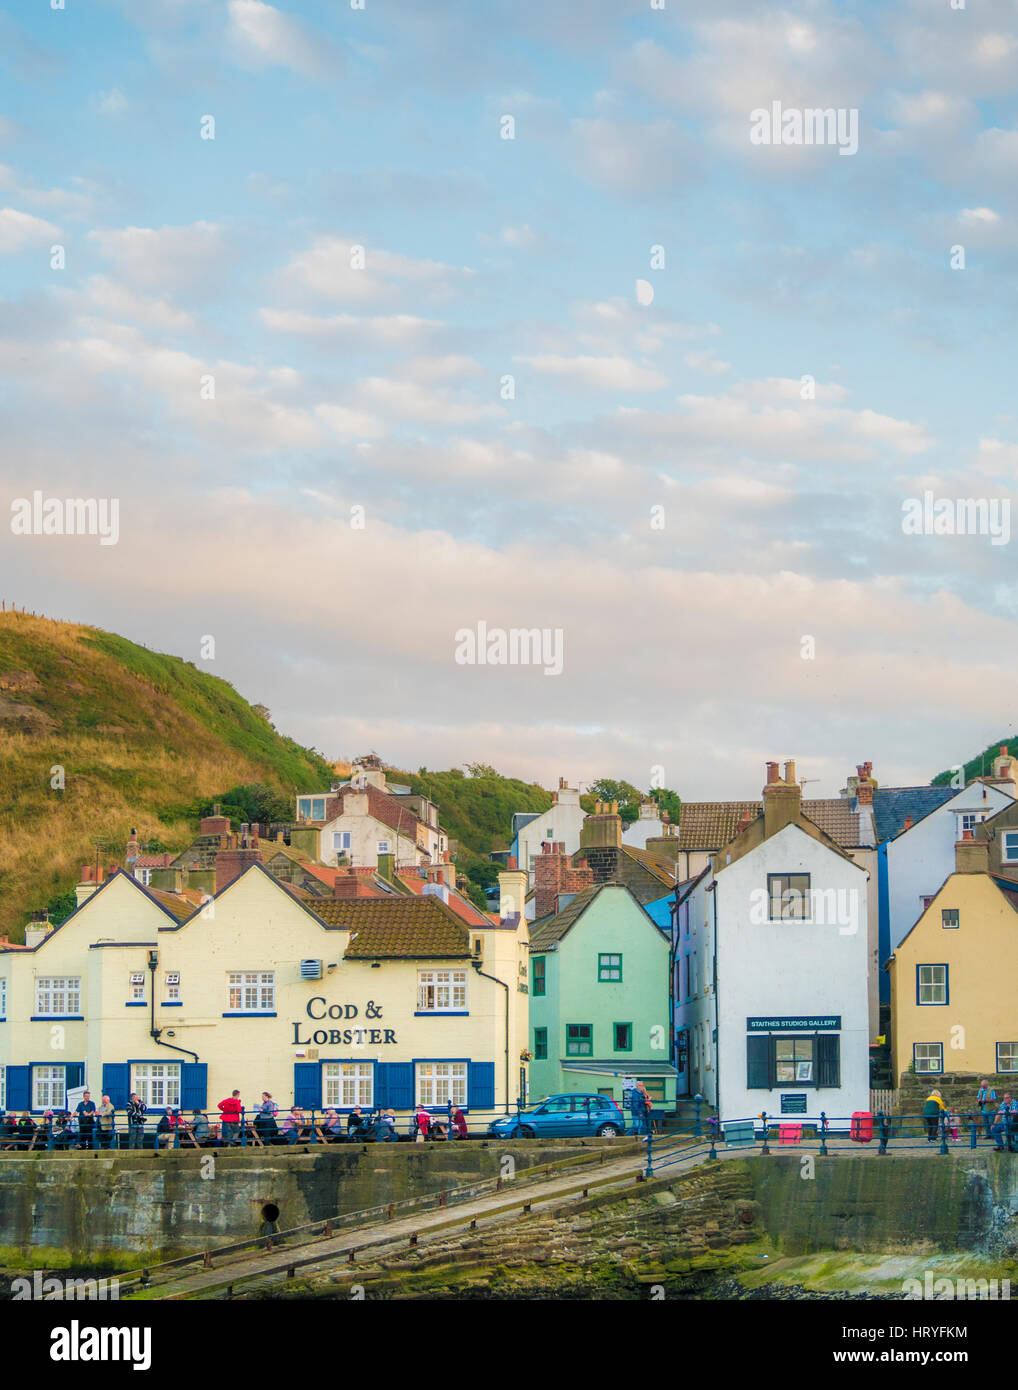 Harbour front buildings at Staithes, North Yorkshire, UK. - Stock Image